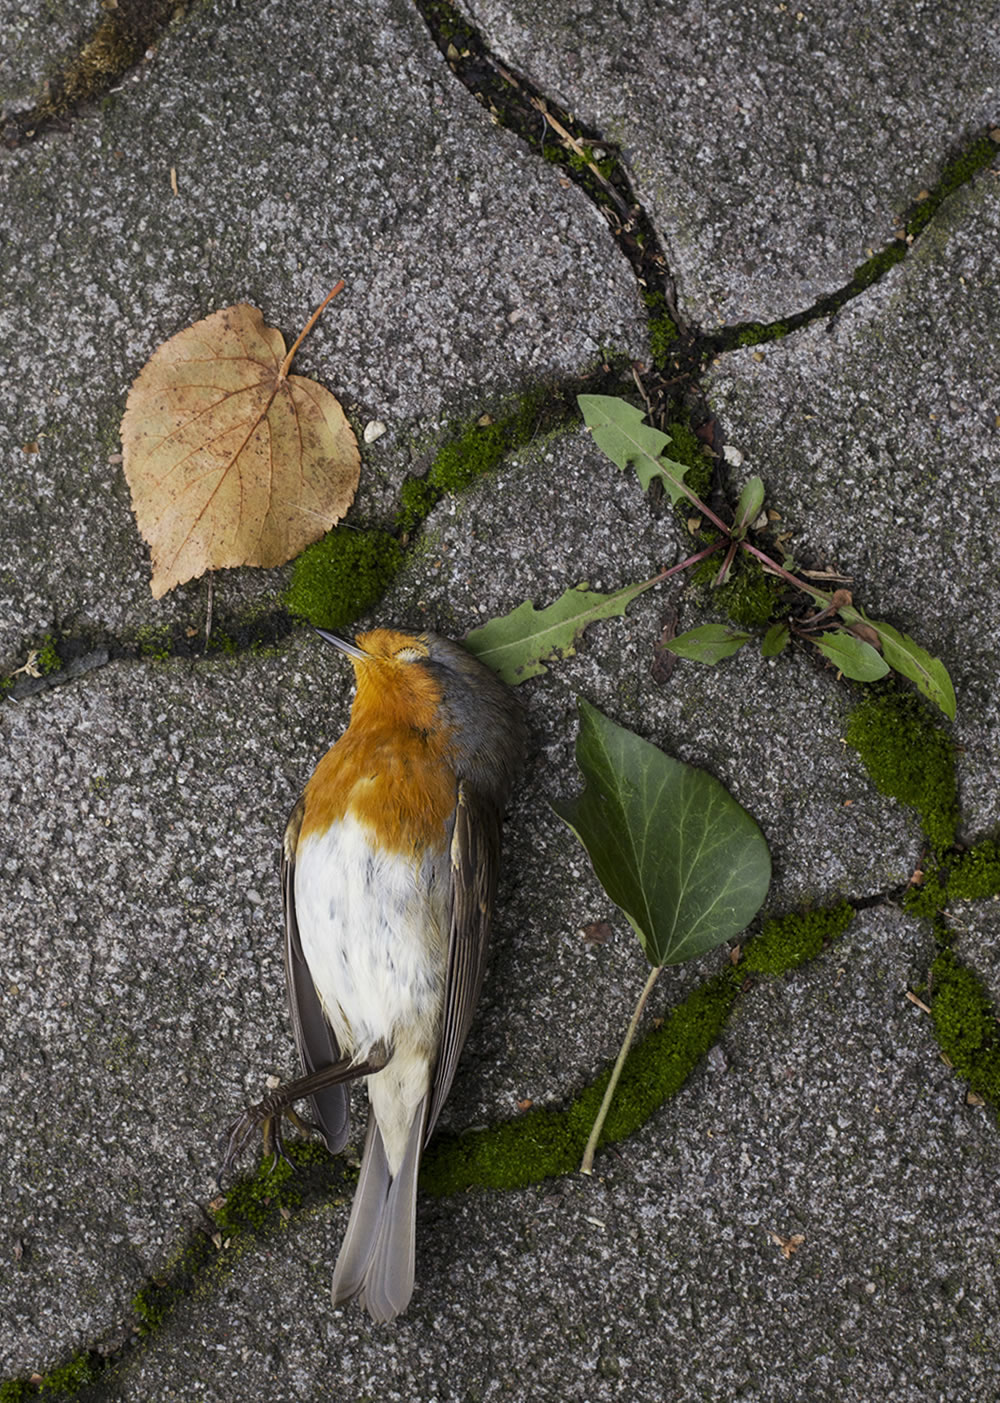 A robin in eternal sleep on a sidewalk in Kaiserslautern, Germany.  In remembrance of All Souls who have occupied physical bodies, big and small.